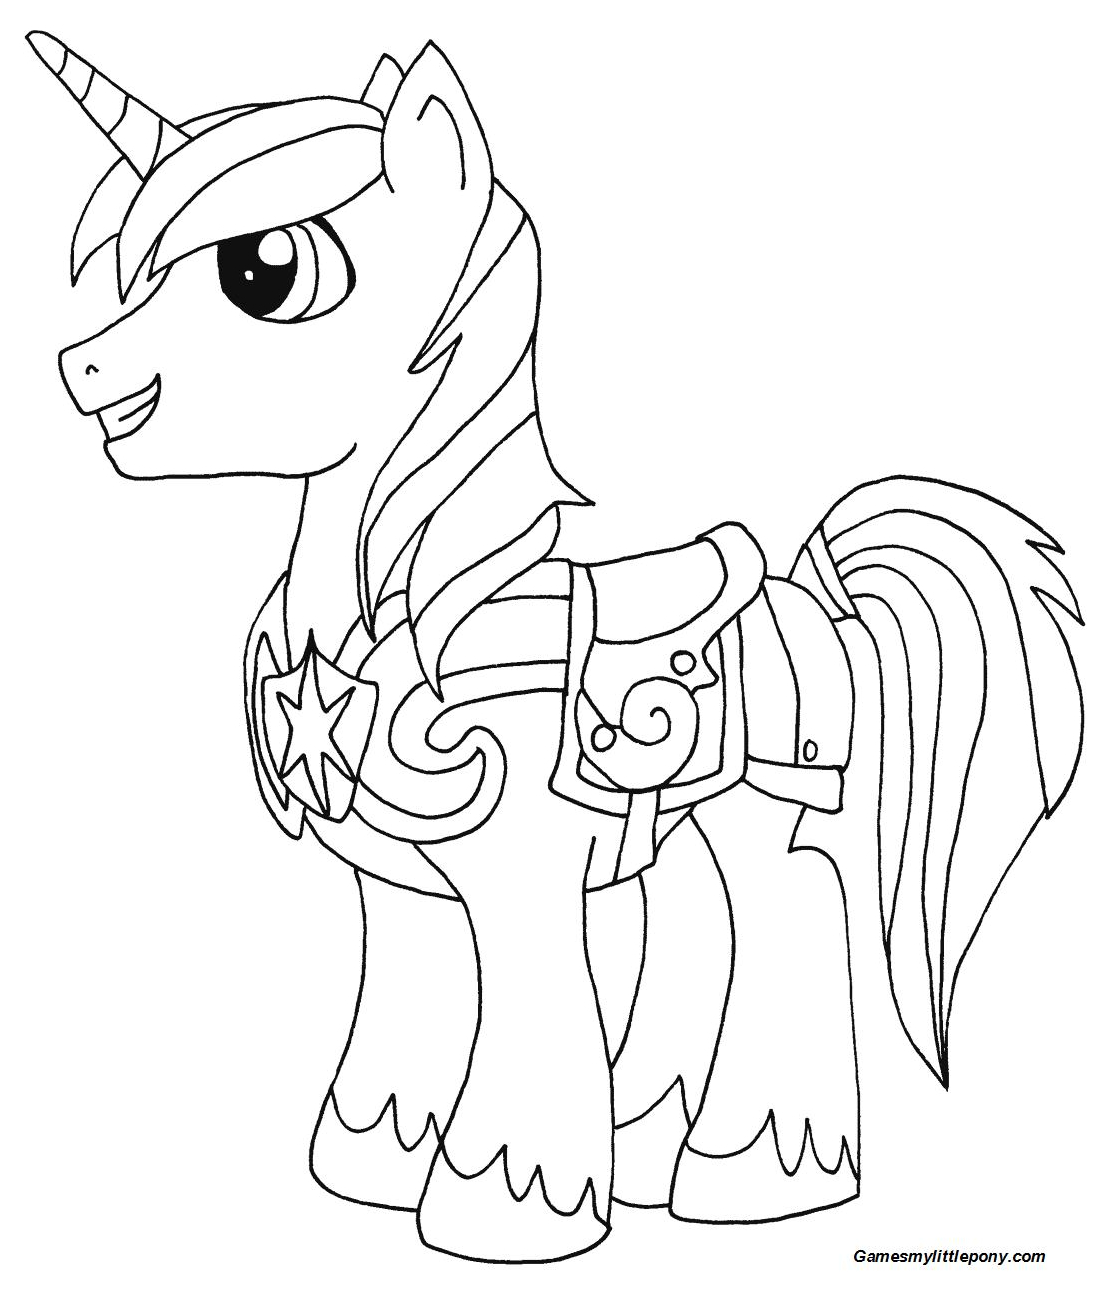 Shining Armor from My Little Pony Coloring Page